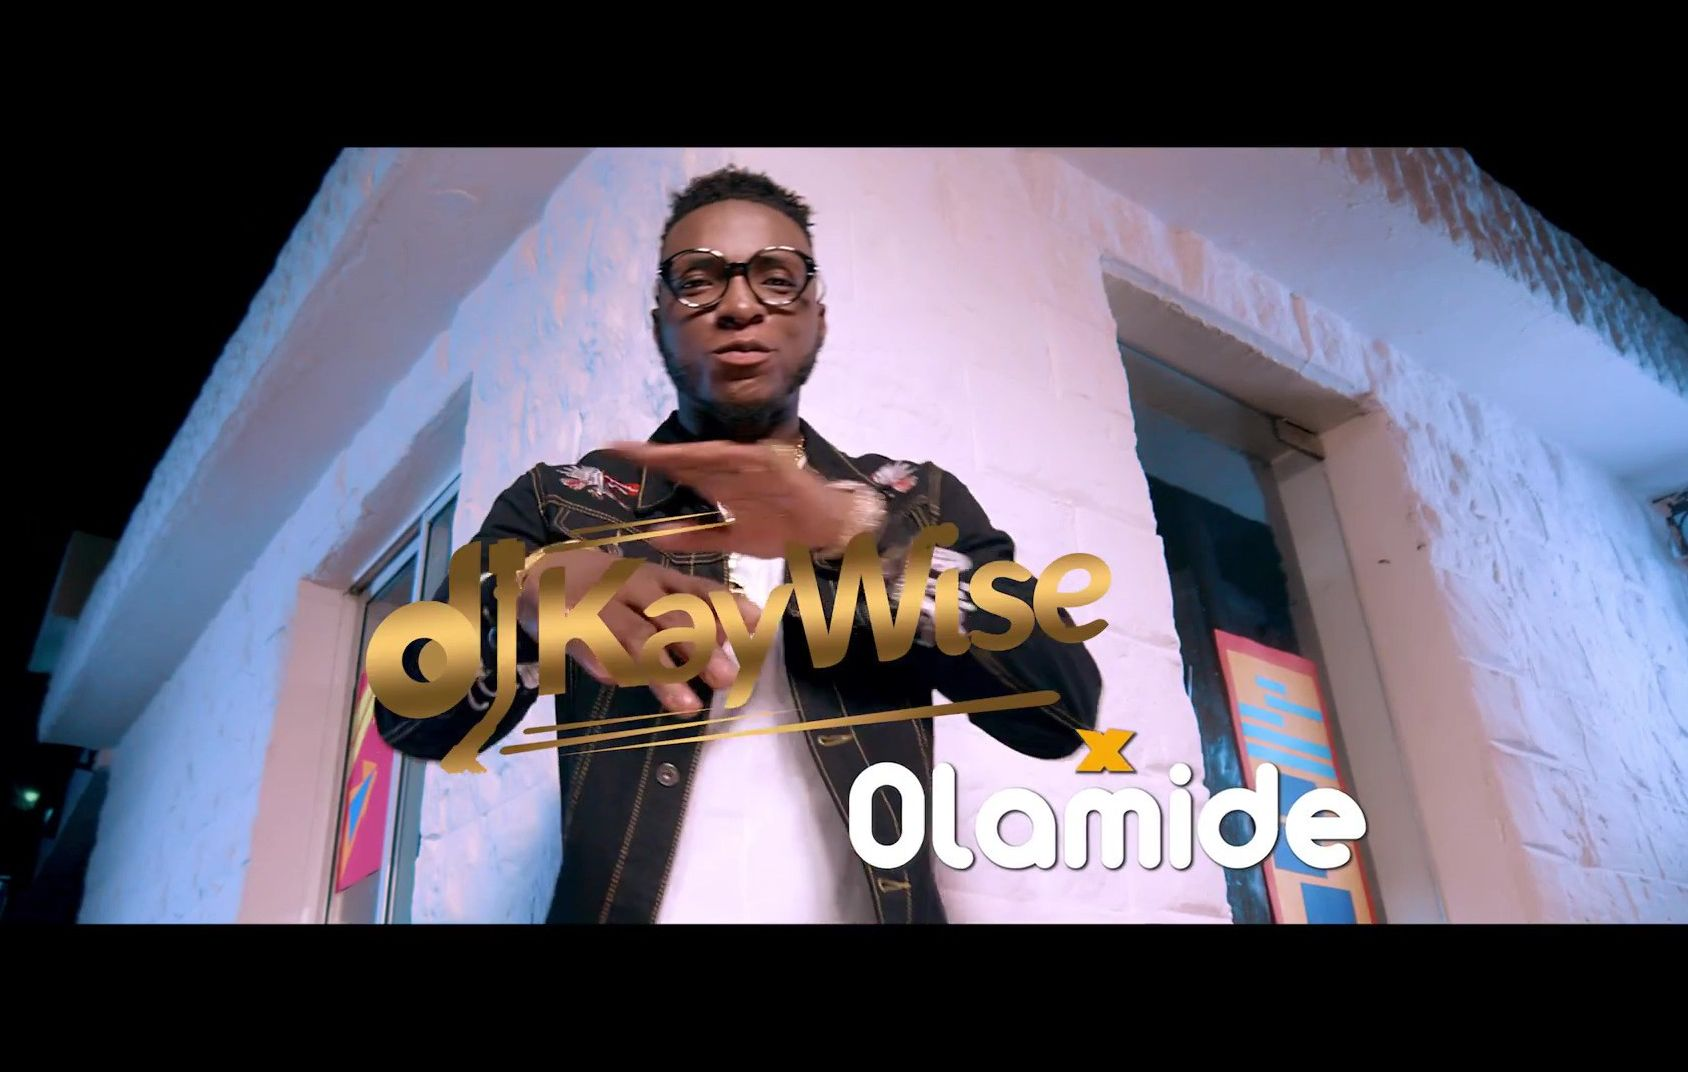 VIDEO: Dj Kaywise ft. Olamide – See Mary See Jesus